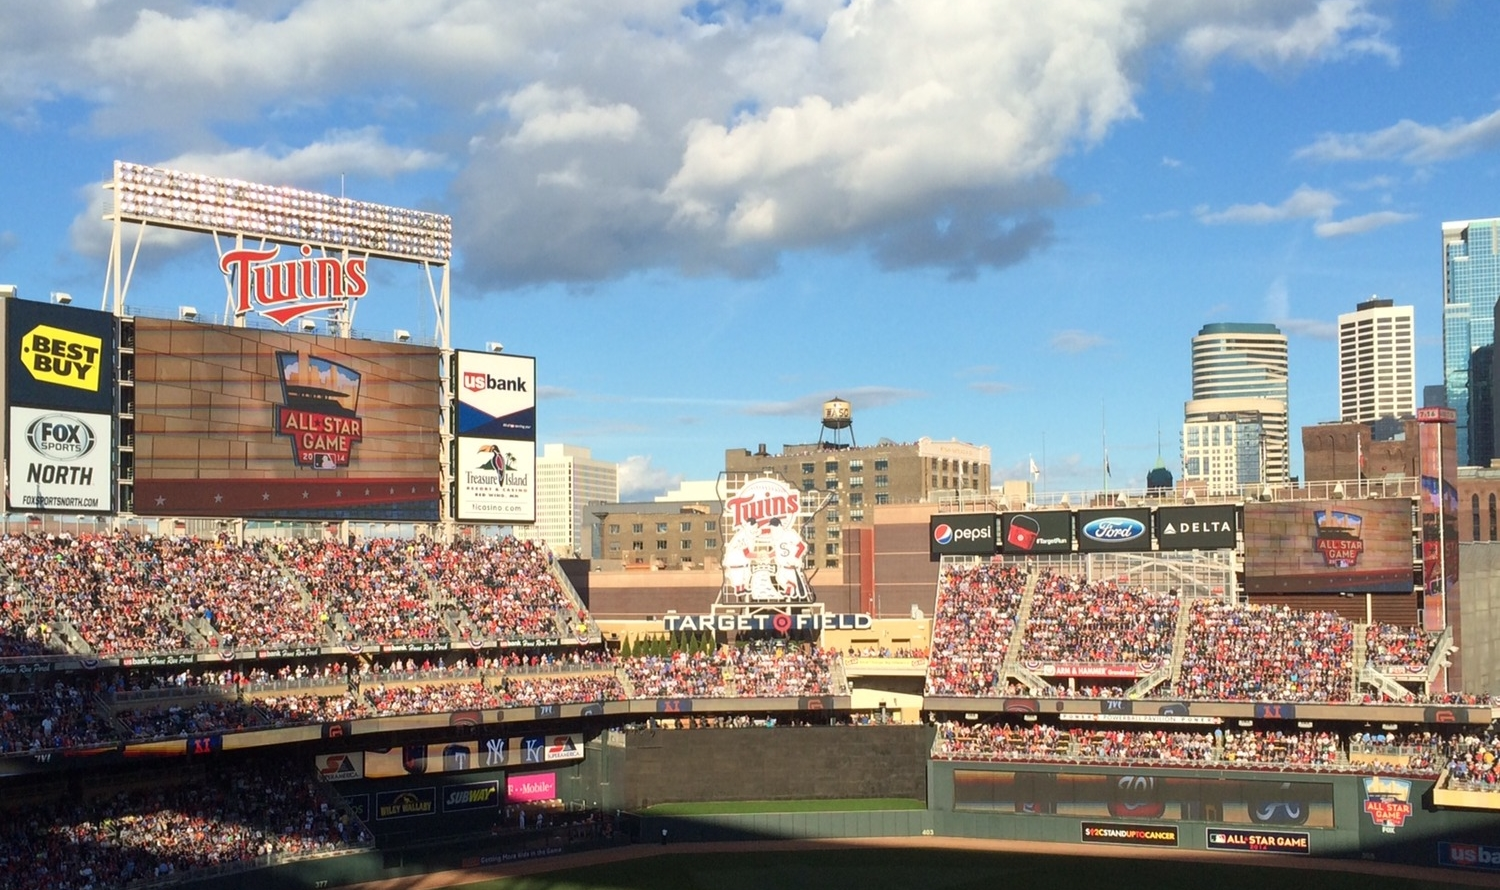 The Minneapolis architecture, blue sky, and clouds match the 2014 ASG logo perfectly.